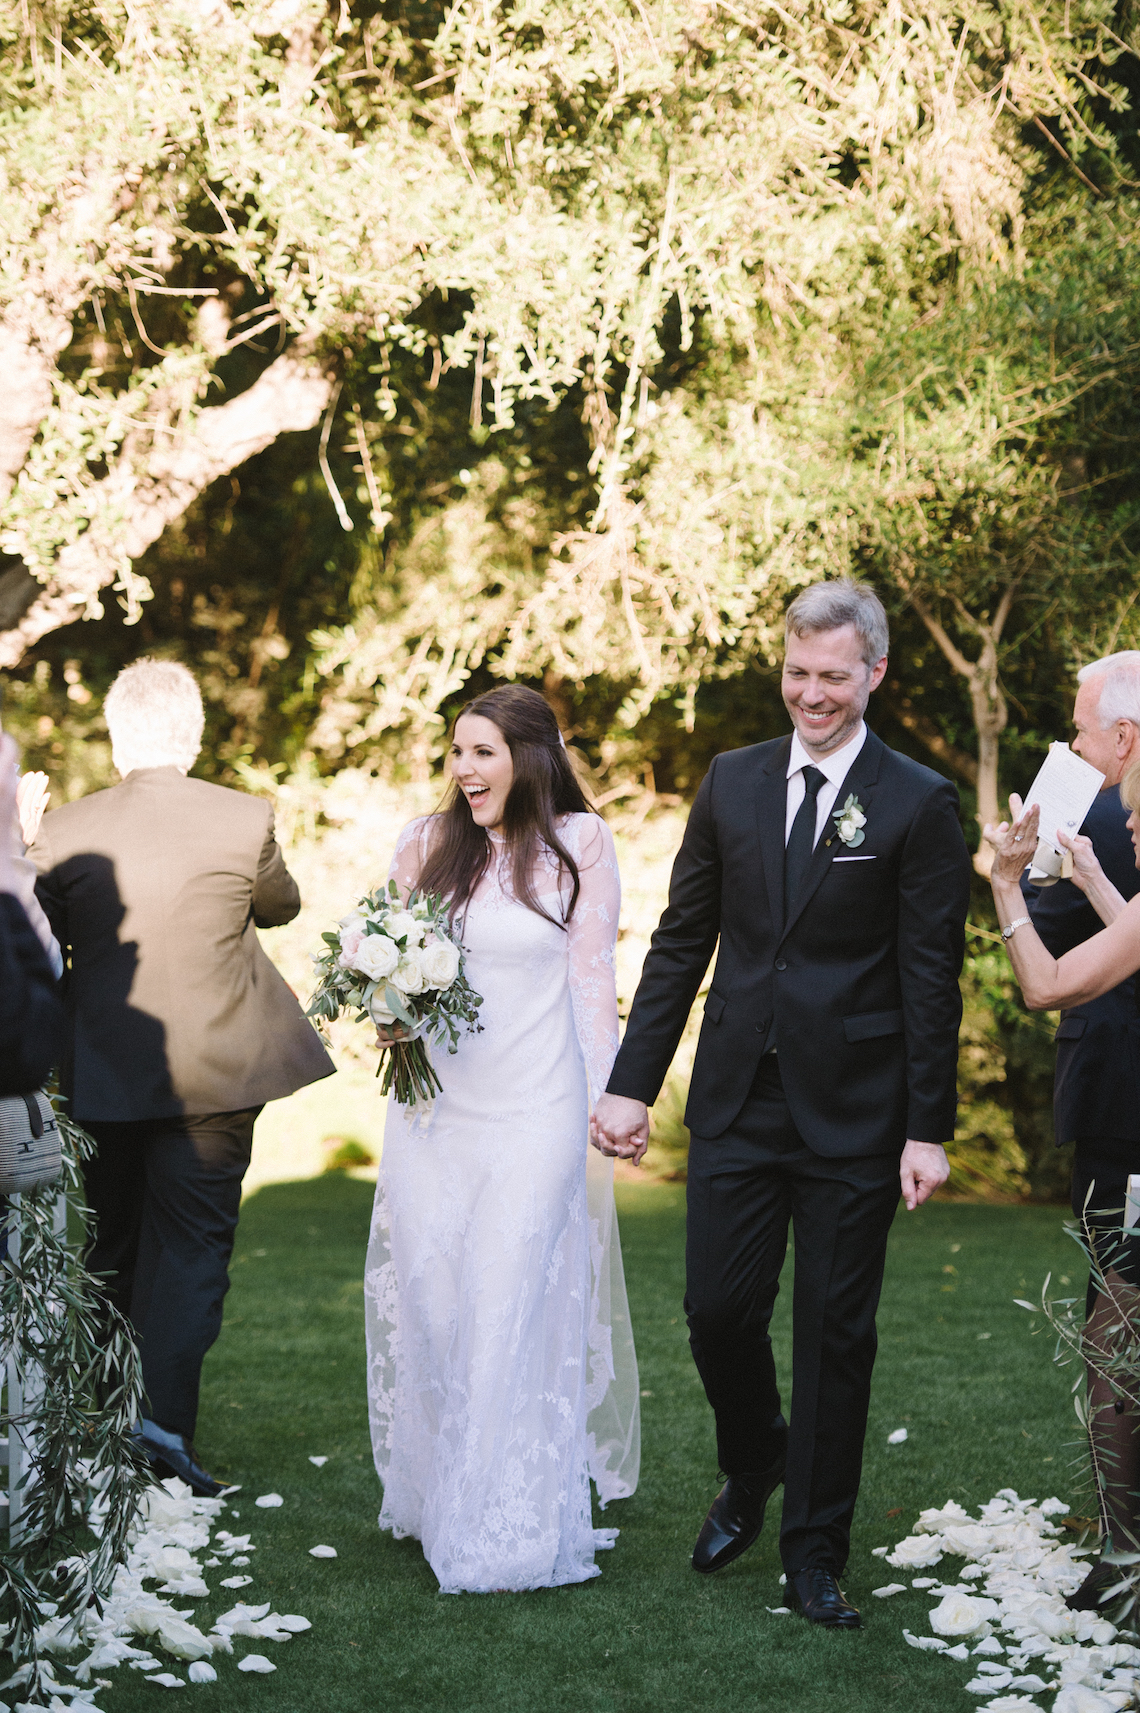 Palm Springs Wedding by Amy and Stuart Photography and Oui Events 44